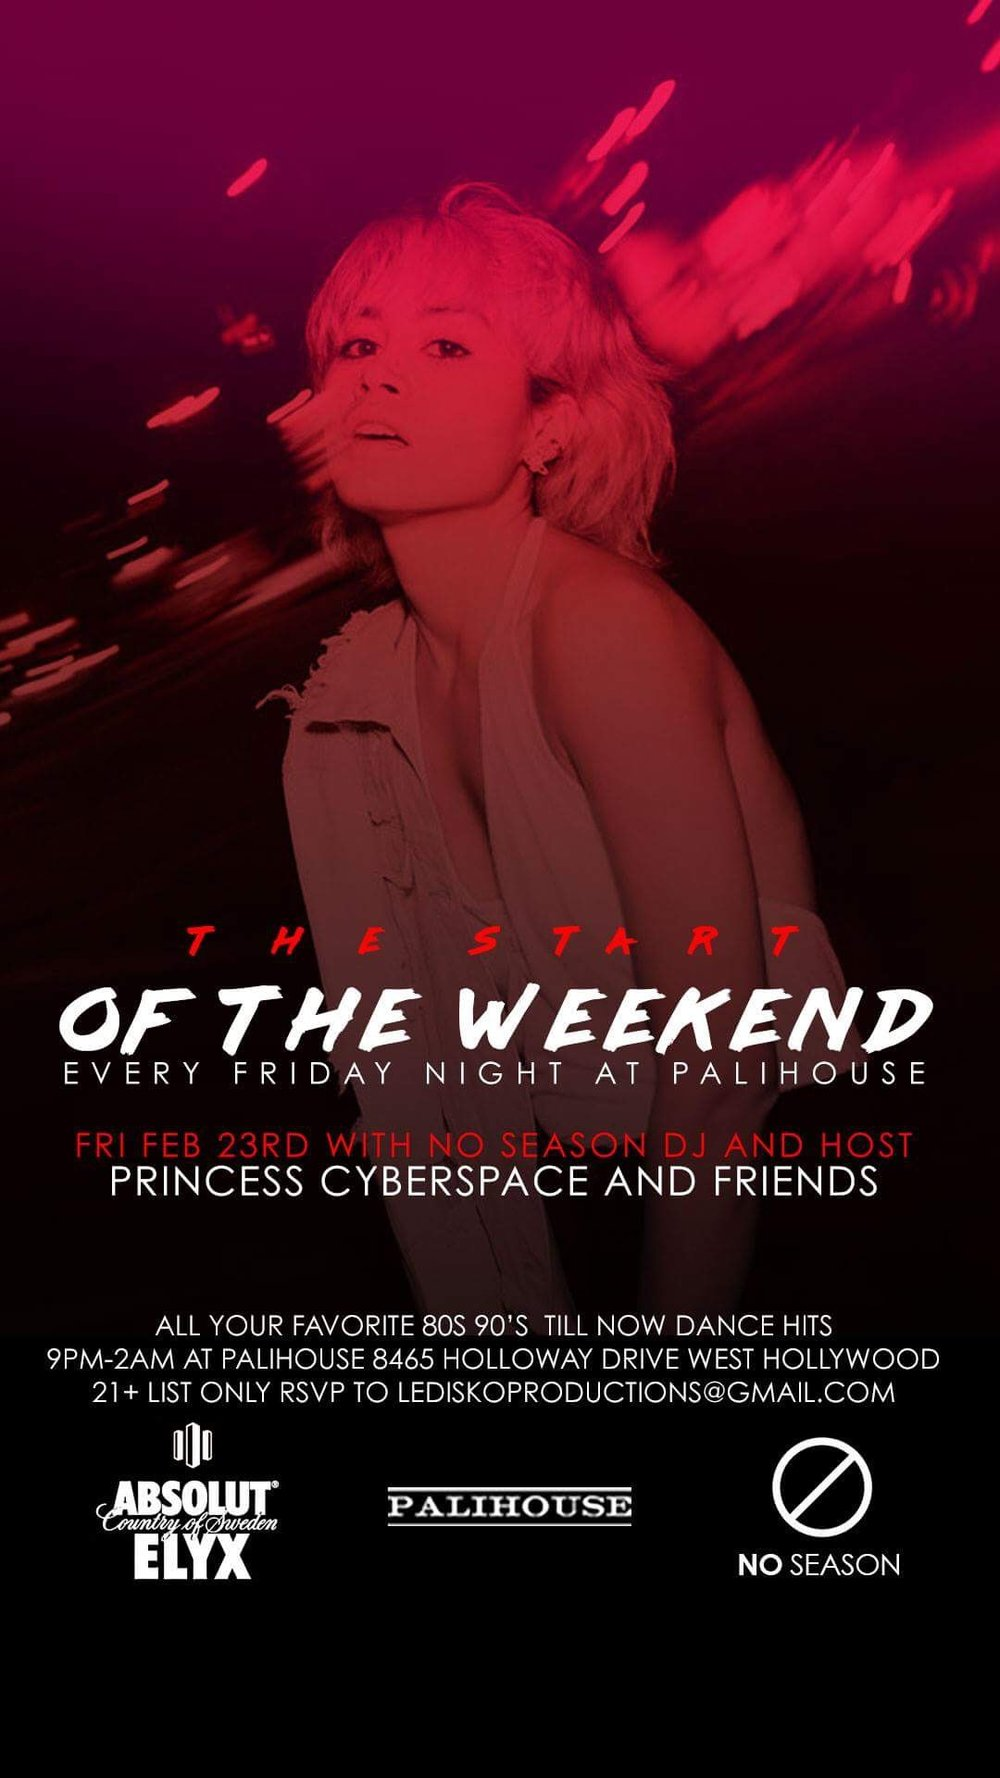 PRINCESS CYBERSPACE RESIDENCY AT PALIHOUSE WEST HOLLYWOOD